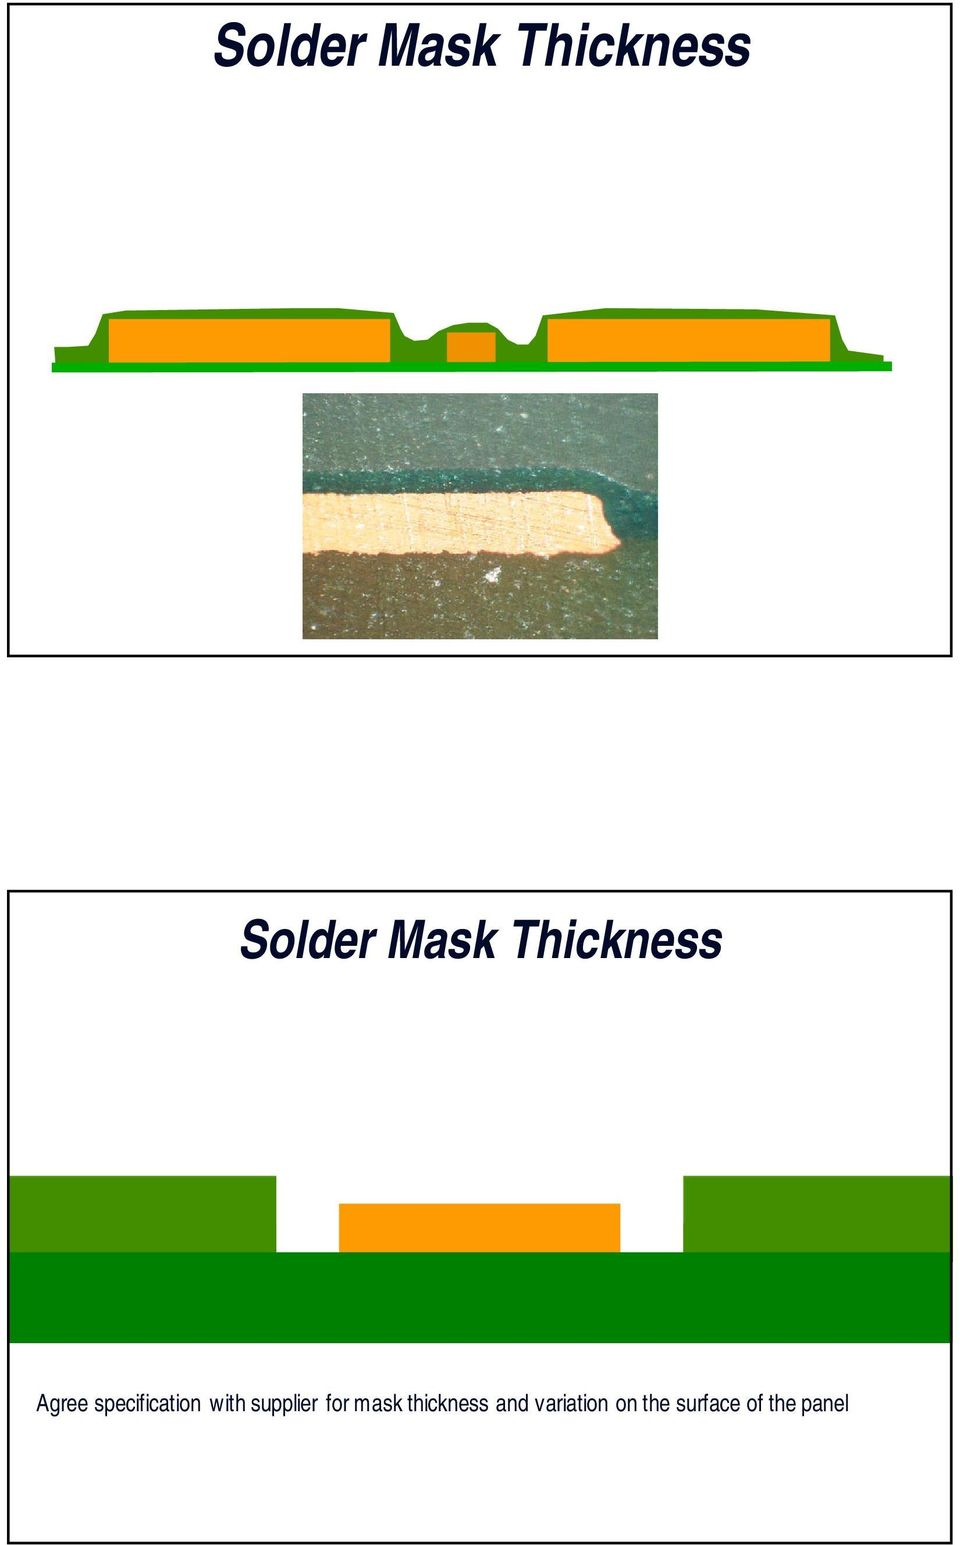 Printed Circuit Board Failures Causes And Cures Webinar Pdf Pcb Rigid Buy Pcbpcbpcb Product On Supplier For Mask Thickness 17 Solder Undercutting Markings Date Of